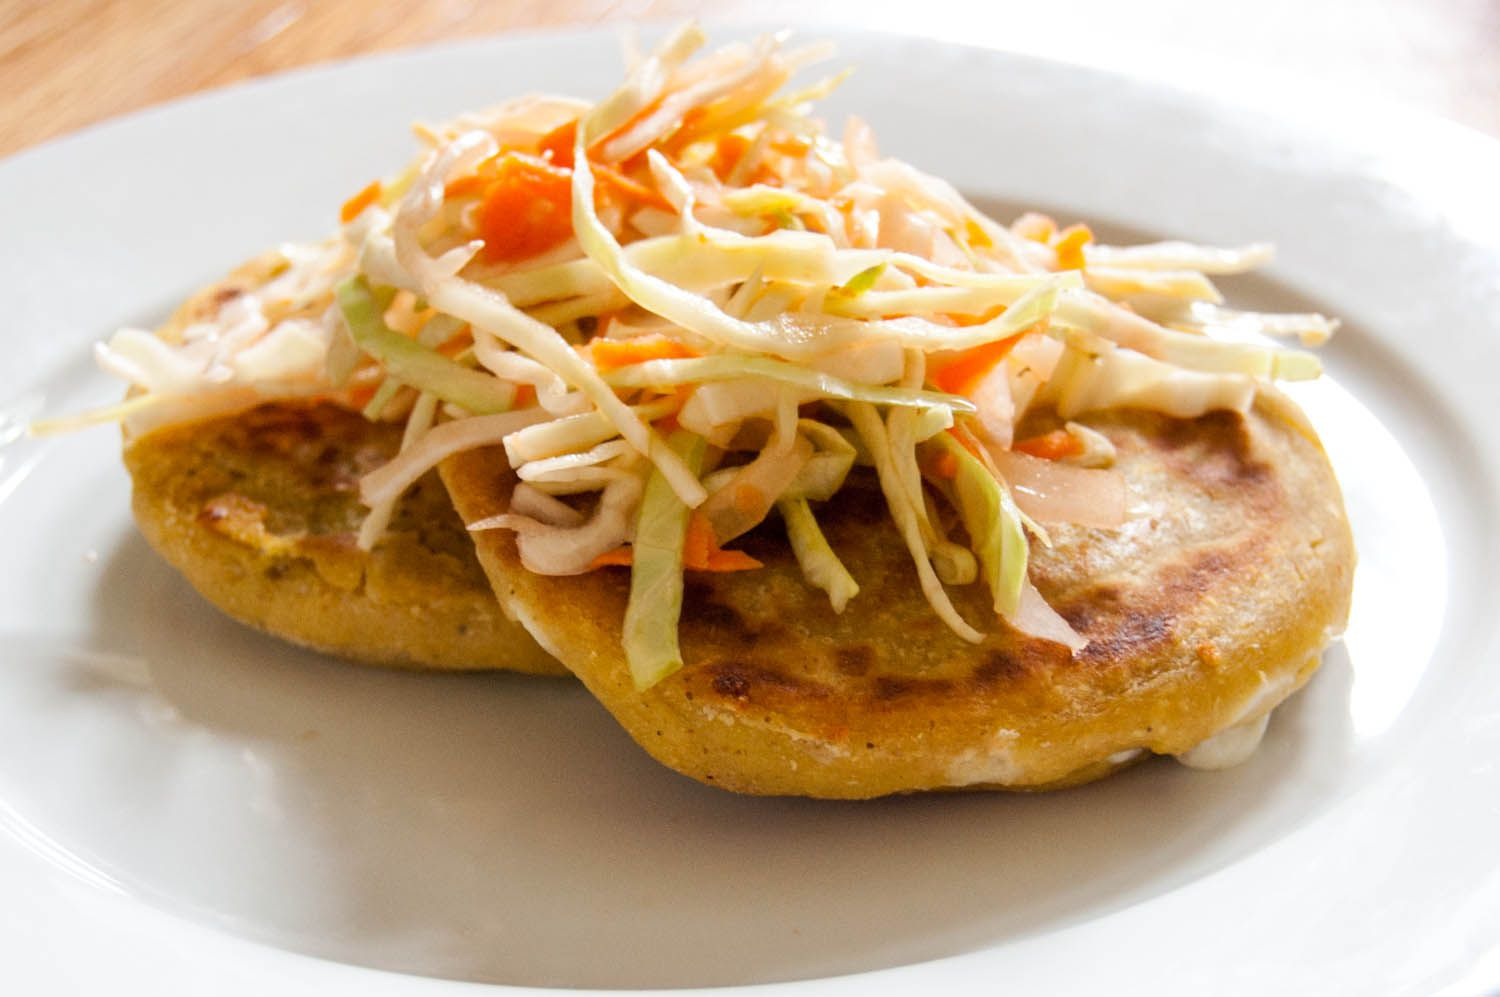 Two Salvadoran pupusas on a plate, topped with curtido, a type of slaw.